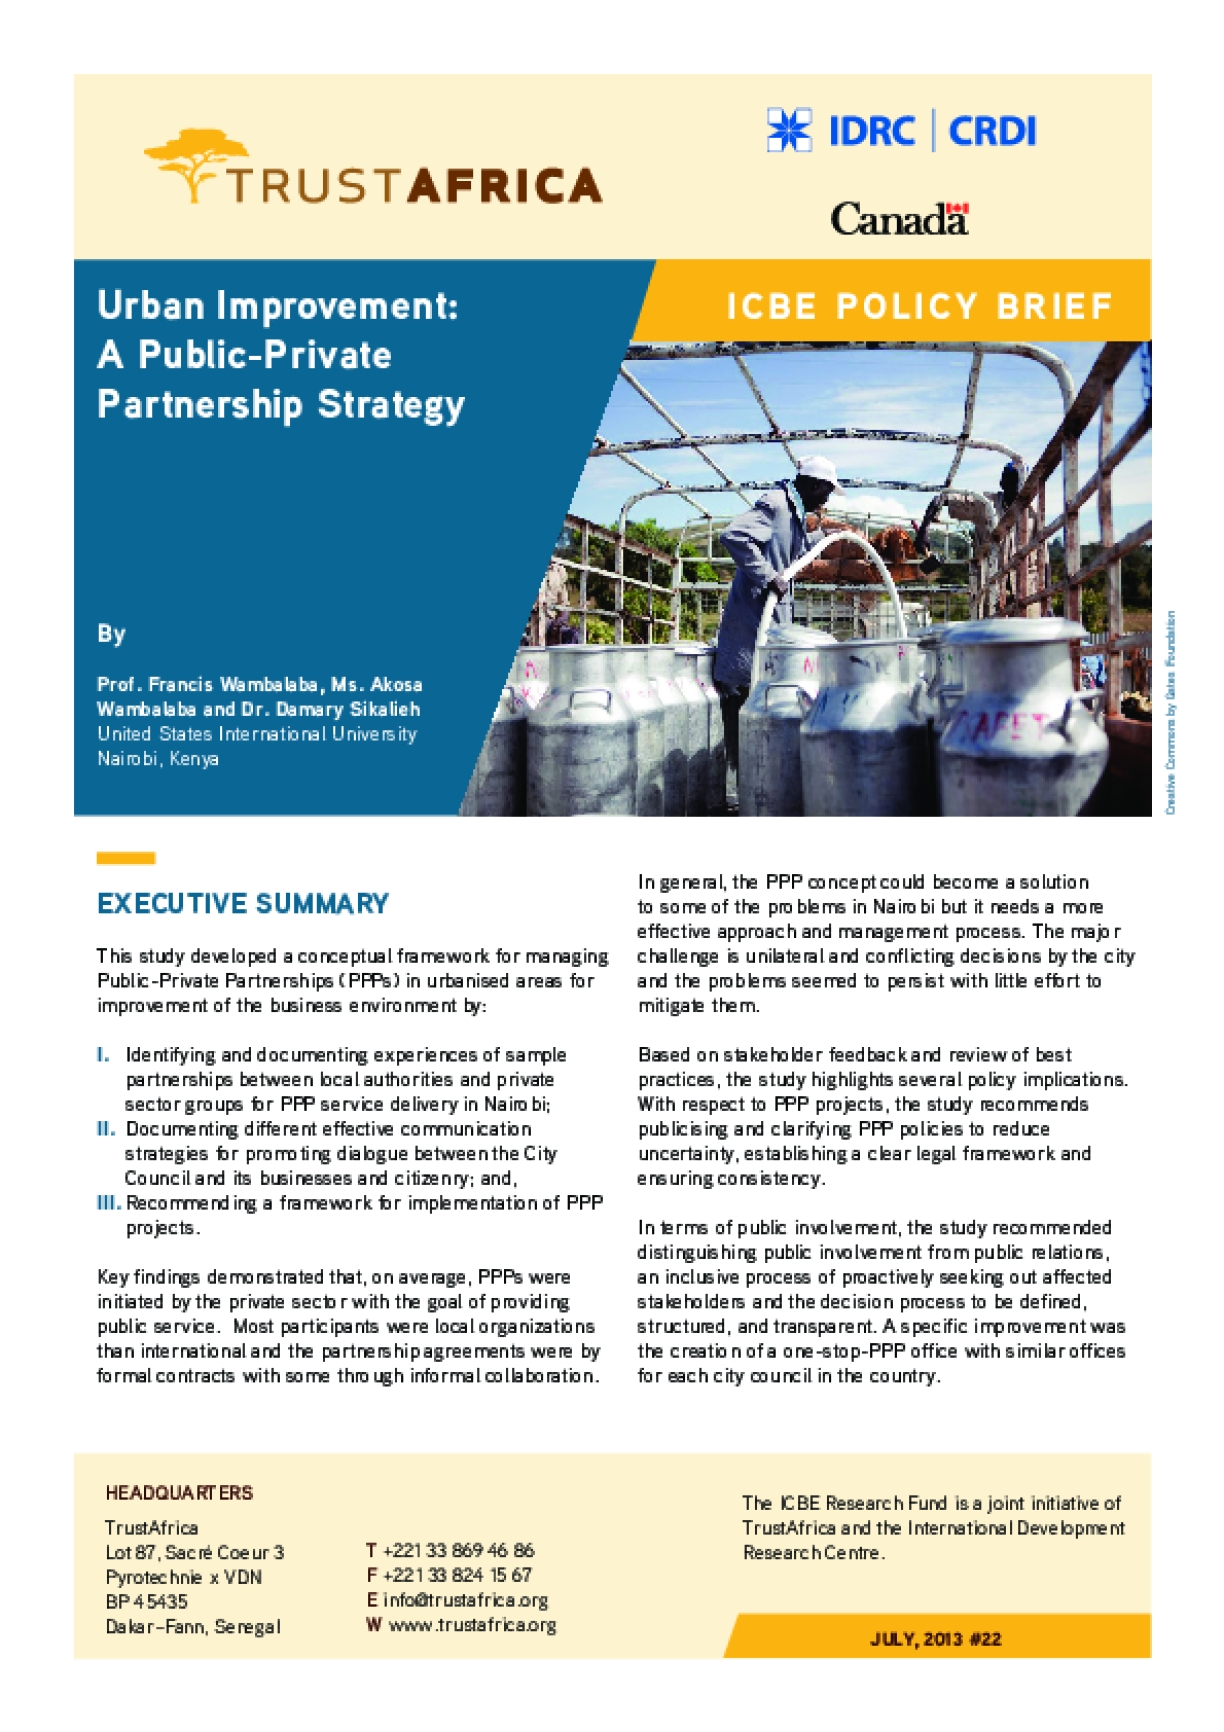 Urban Improvement: A Public-Private Partnership Strategy